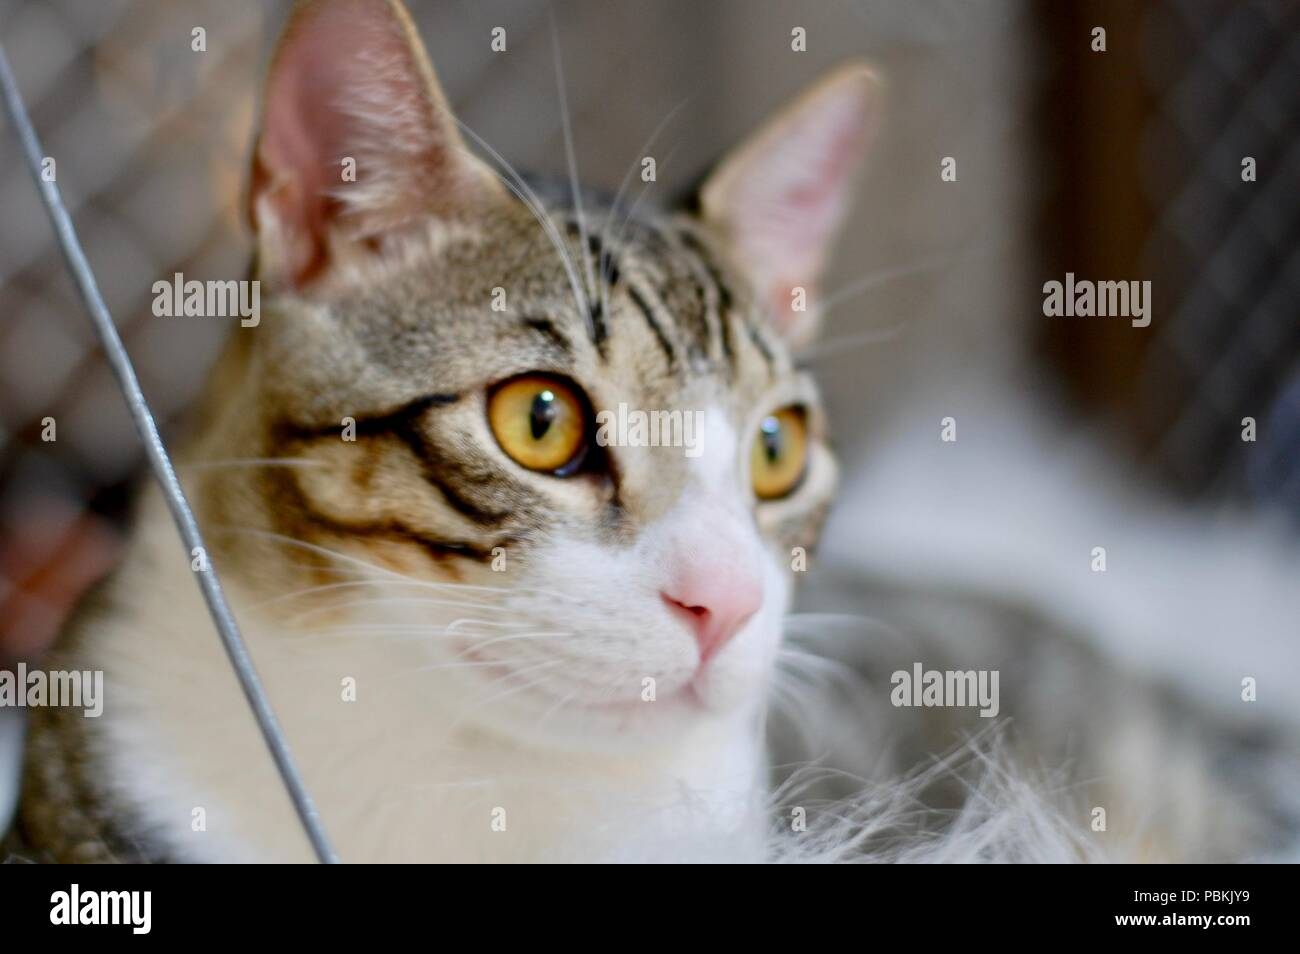 Lovely cat at home - Stock Image